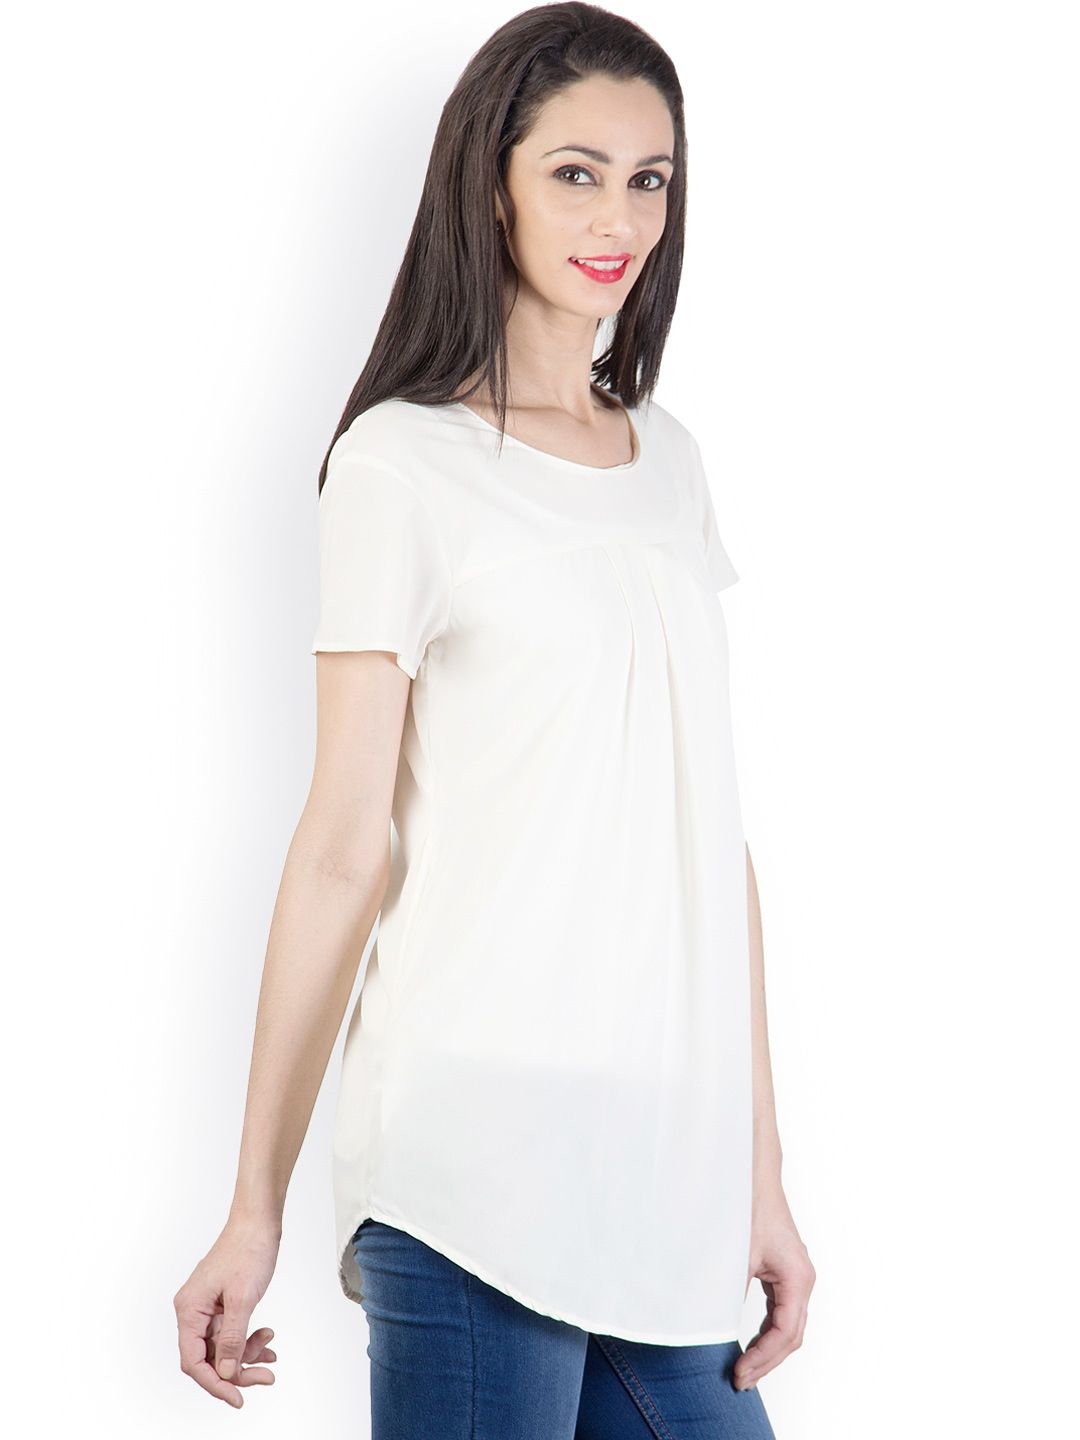 FREE SHIPPING AVAILABLE! Shop megasmm.gq and save on Tunic Tops Tops.